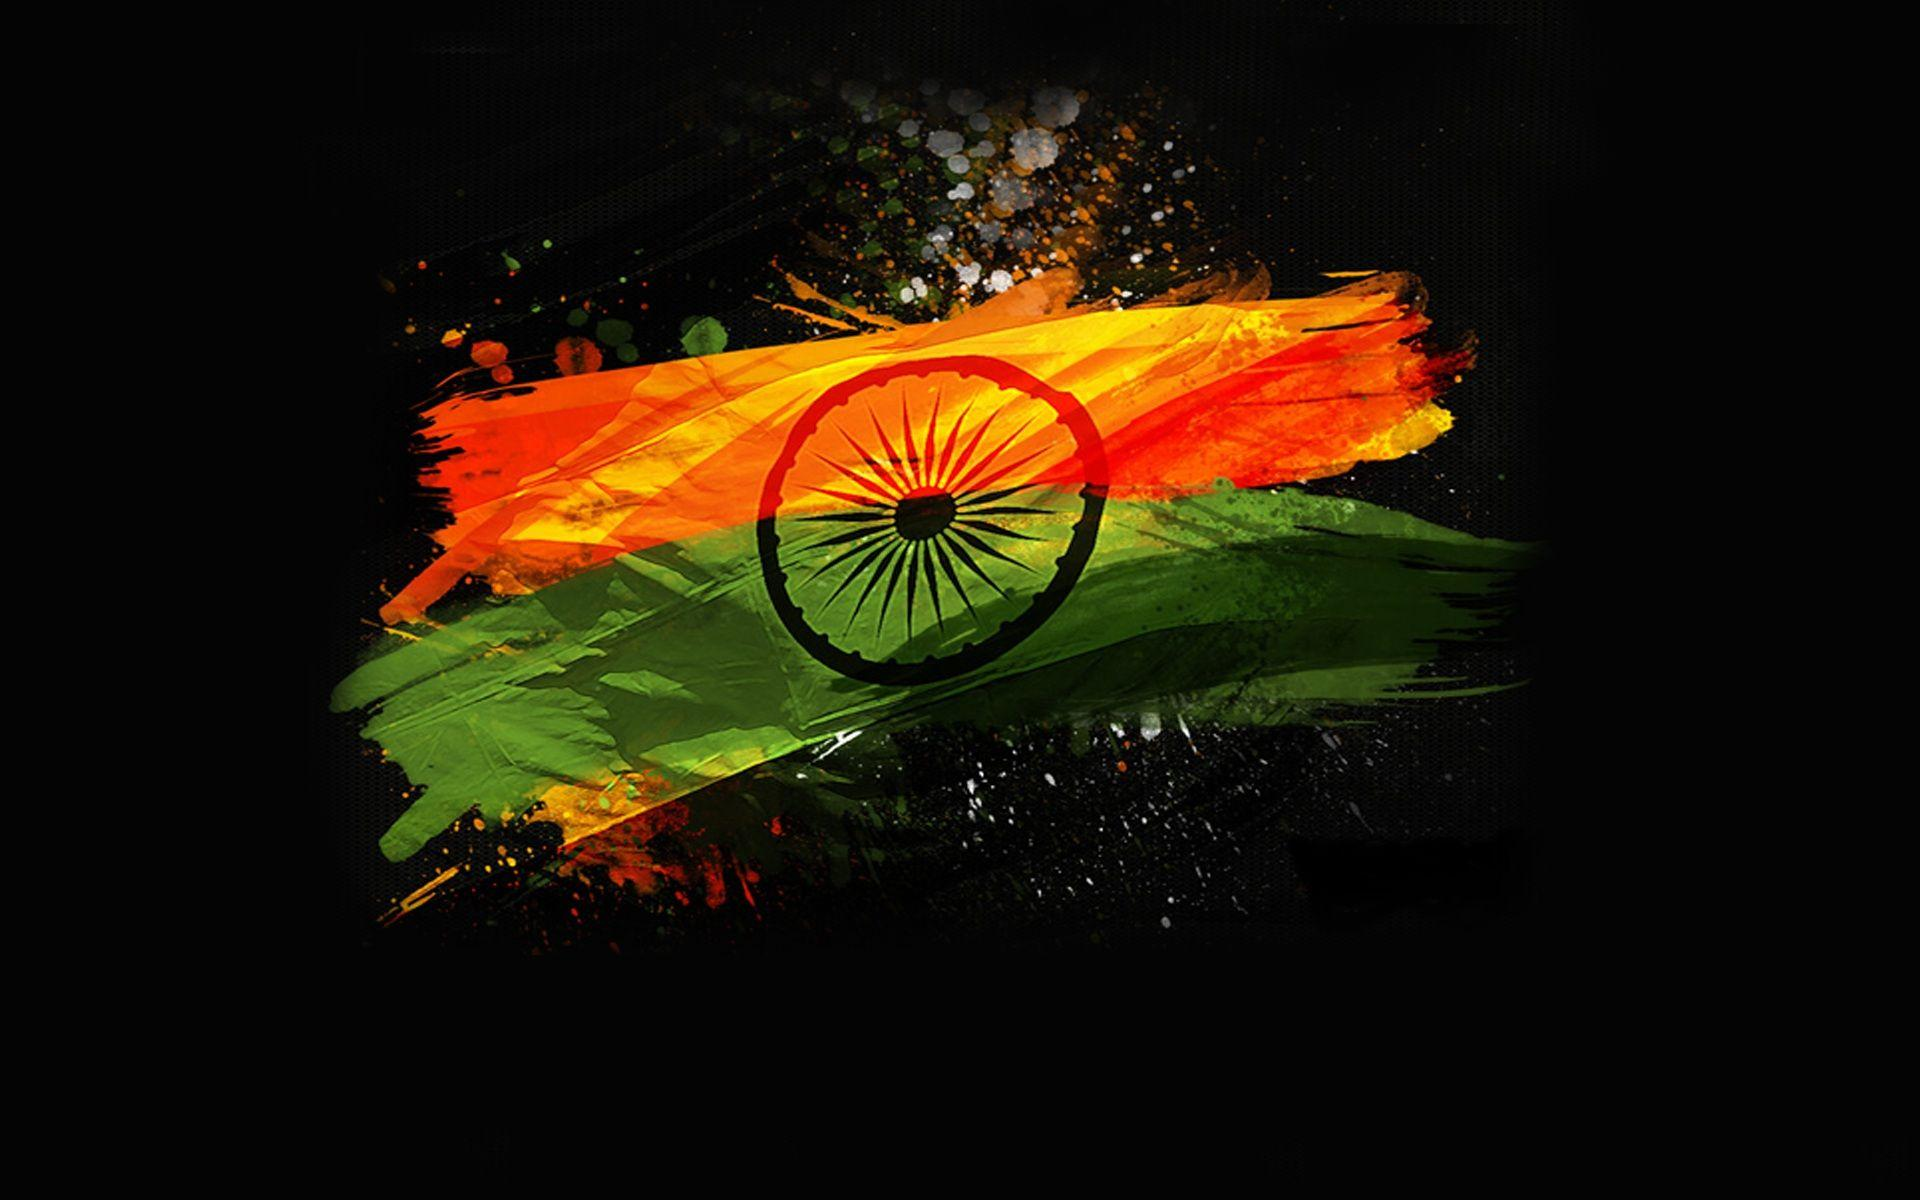 Indian army hd wallpapers for mobile wallpaper cave - Indian flag 4k wallpaper ...